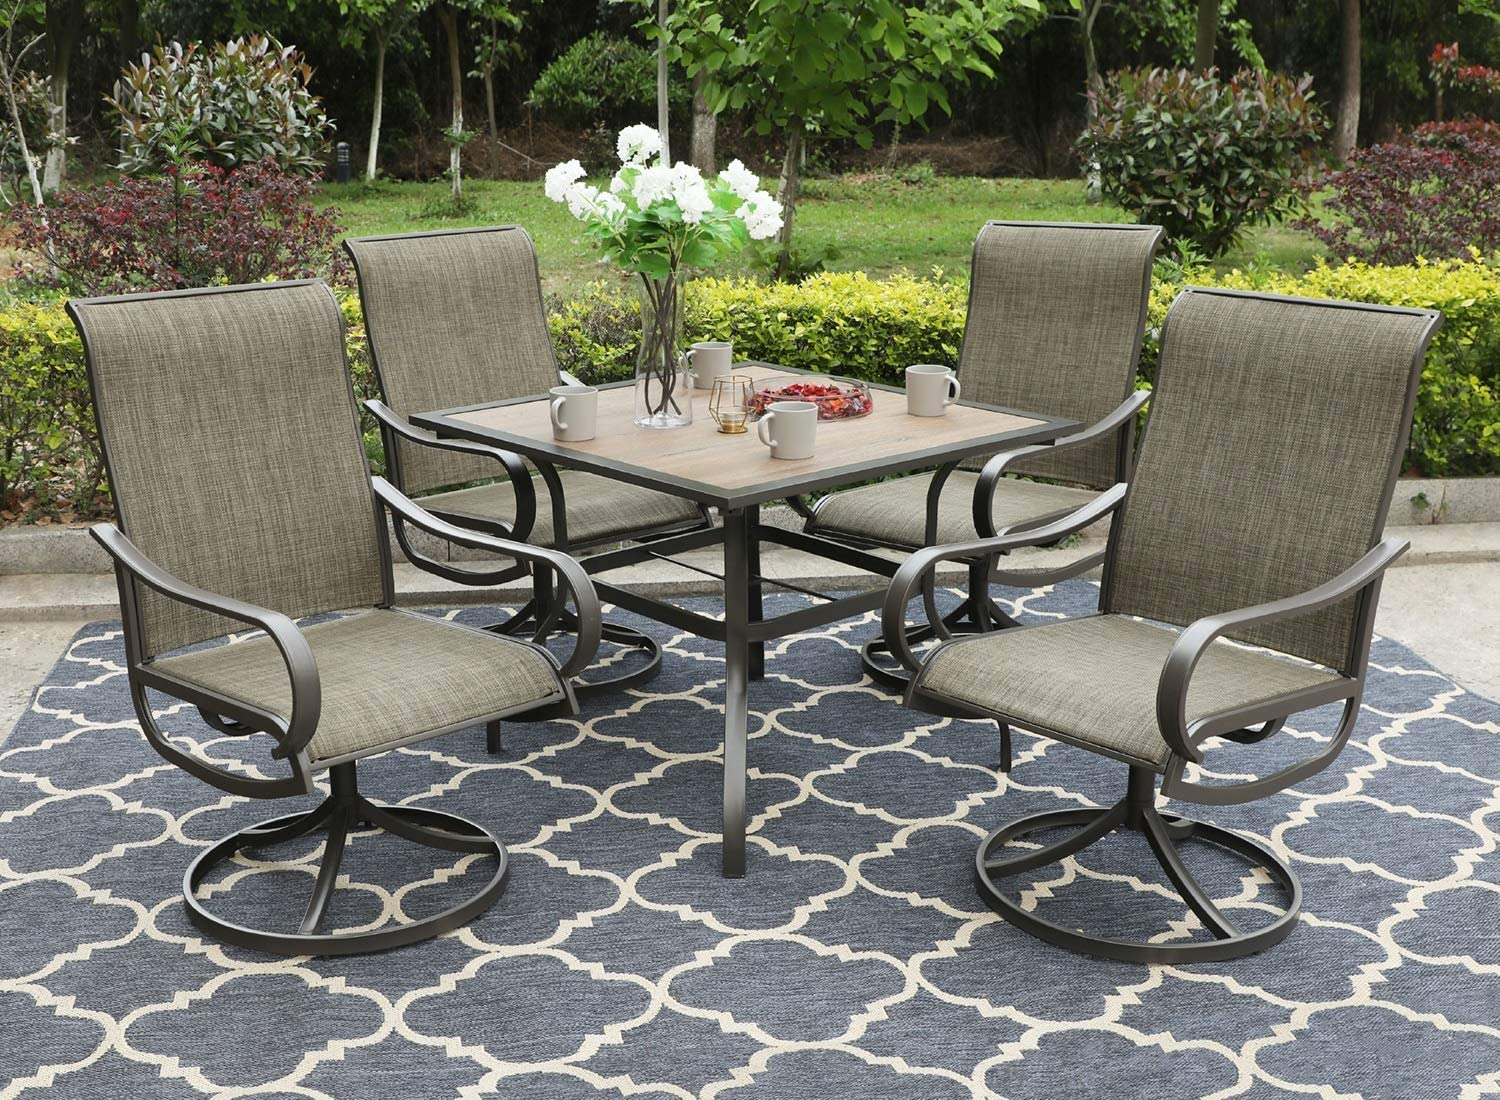 "Sophia & William Patio Dining Set, 1 Square 37""x 37"" Umbrella Table, 4 Swivel Chairs Furniture Set for Outdoor Garden Lawn Pool Metal Frame Easy to Care Weather Resistant: Garden & Outdoor"